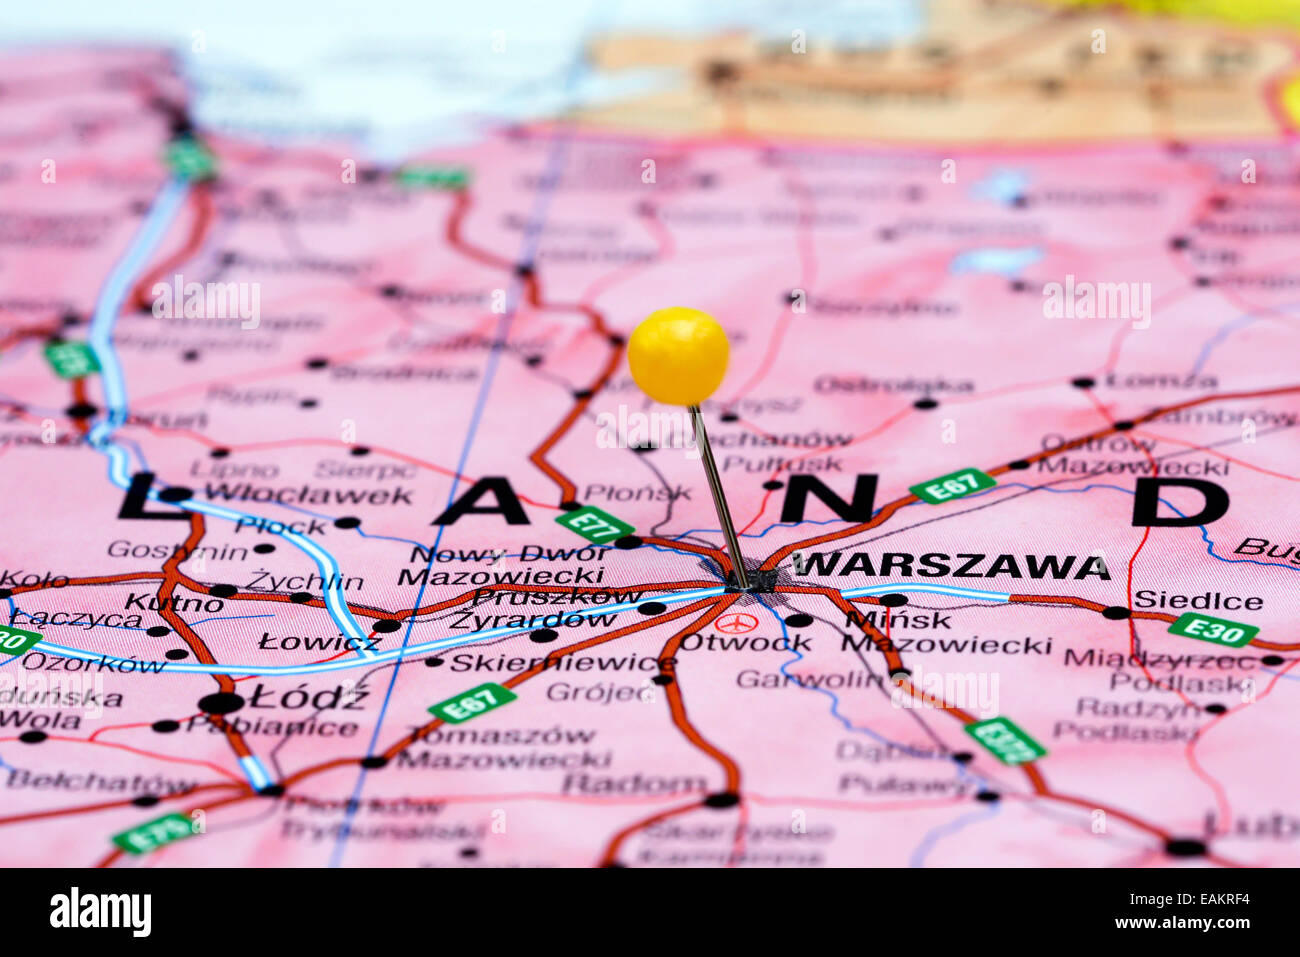 Warsaw Europe Map.Warsaw Pinned On A Map Of Europe Stock Photo 75423576 Alamy